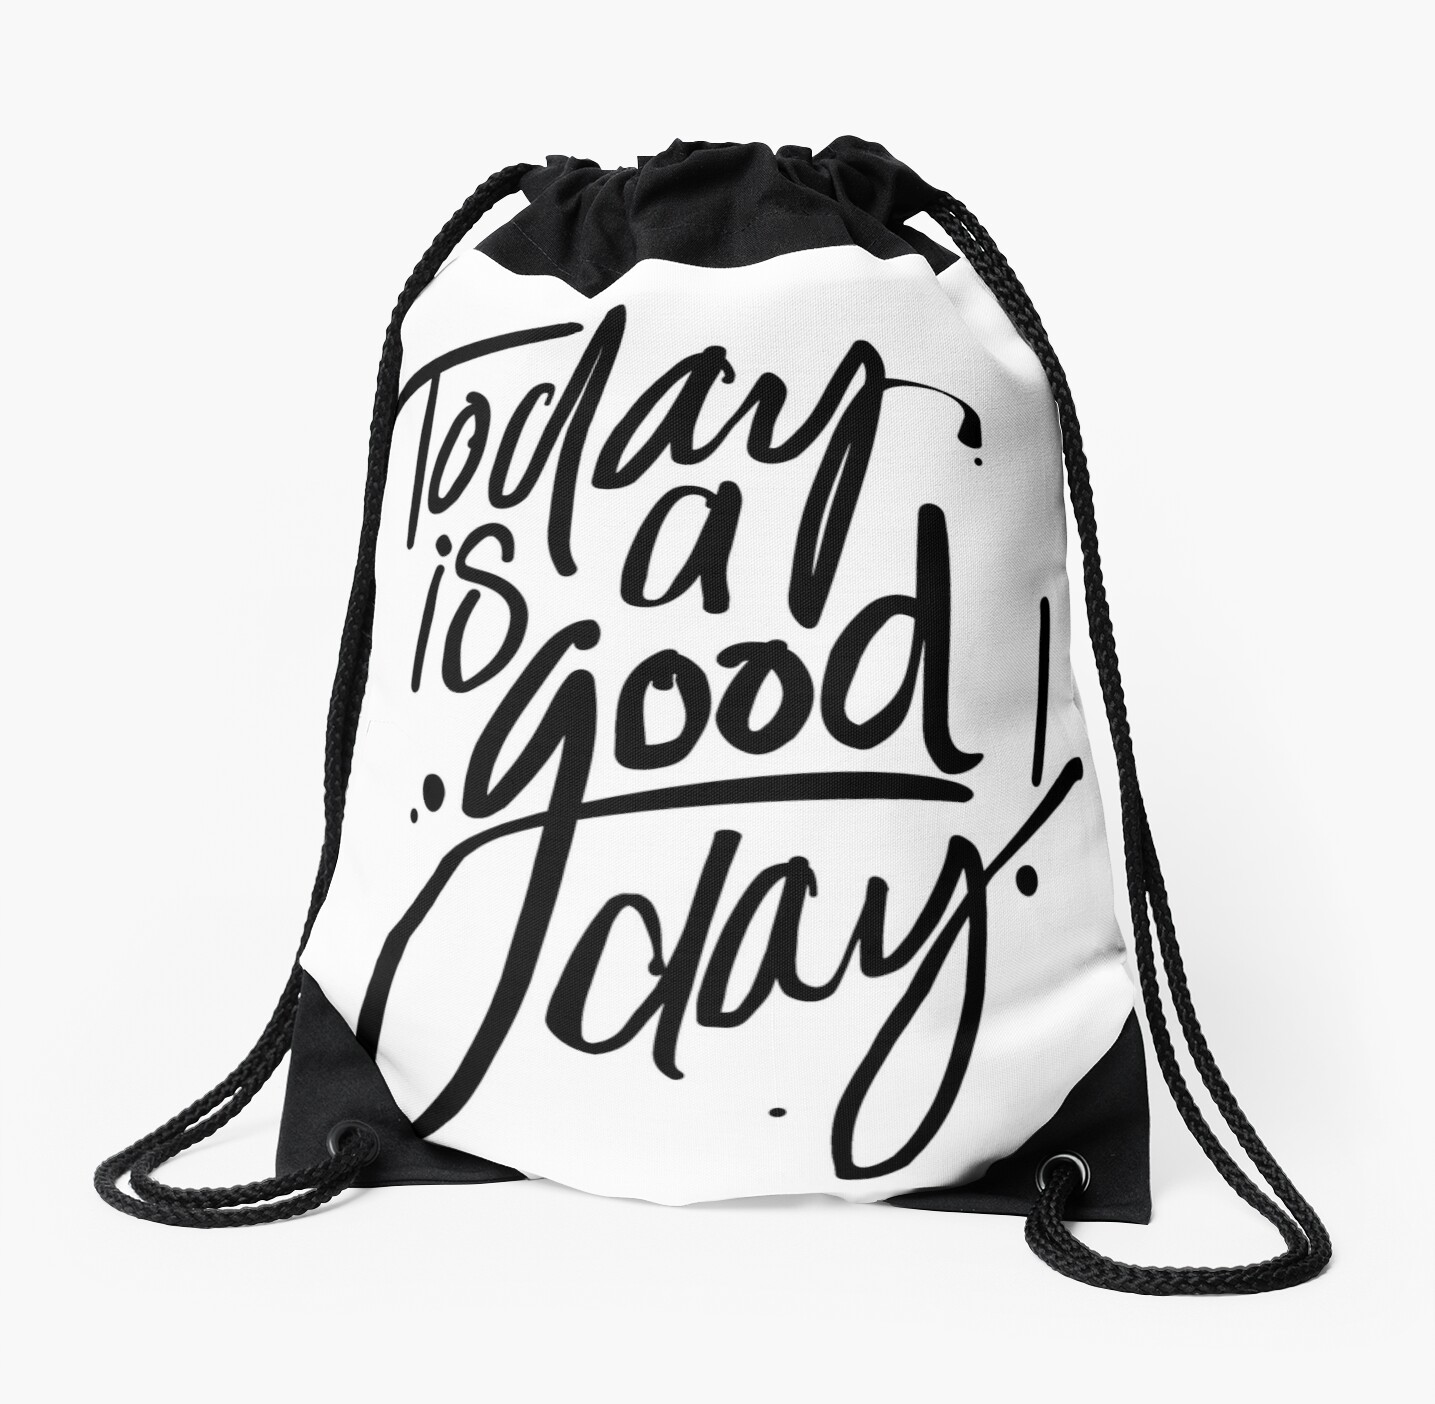 Today is a Good Day! by berlinartist